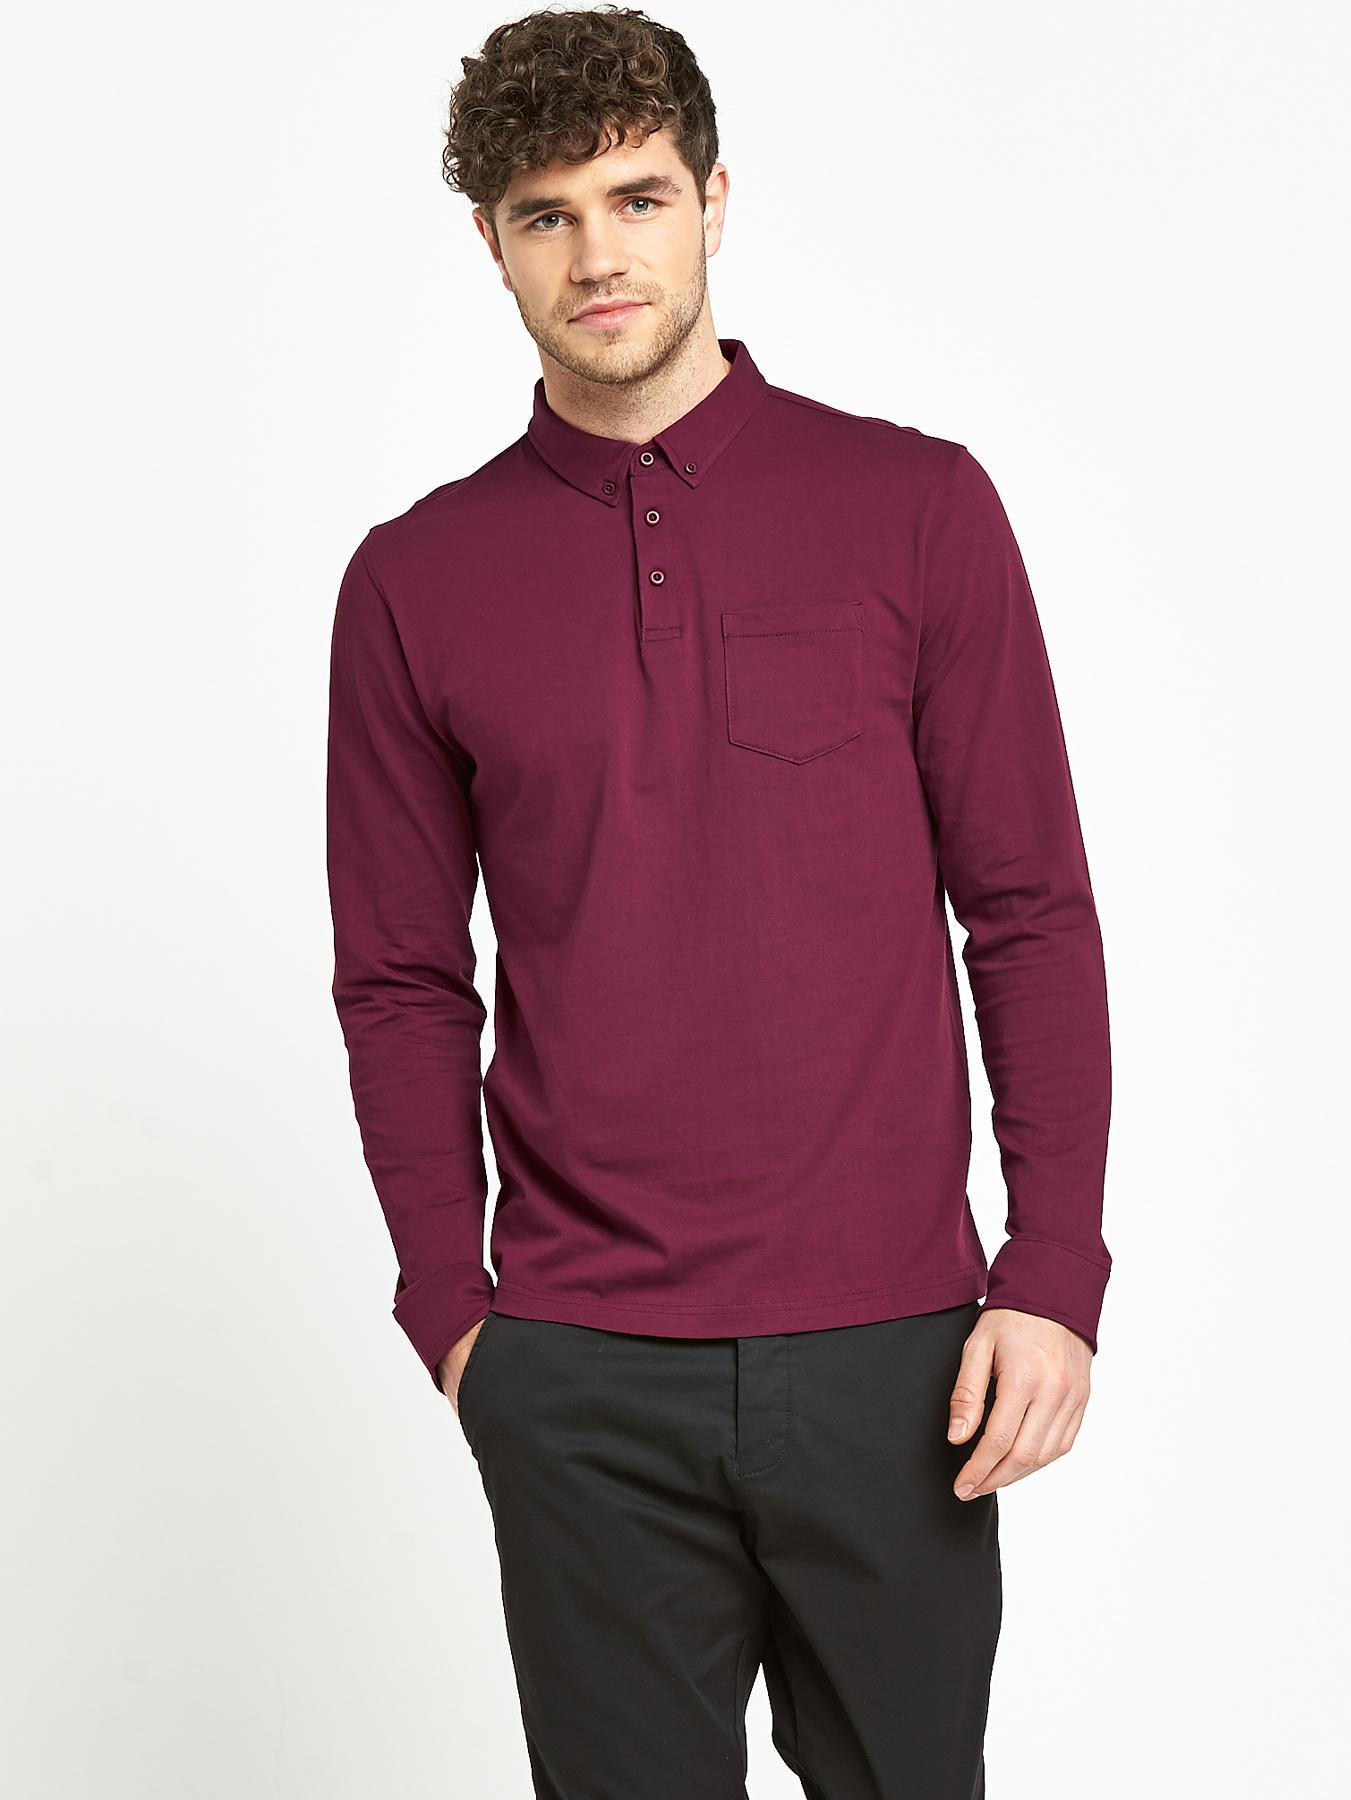 Mens Long Sleeve Slim Fit Jersey Polo Top at Littlewoods